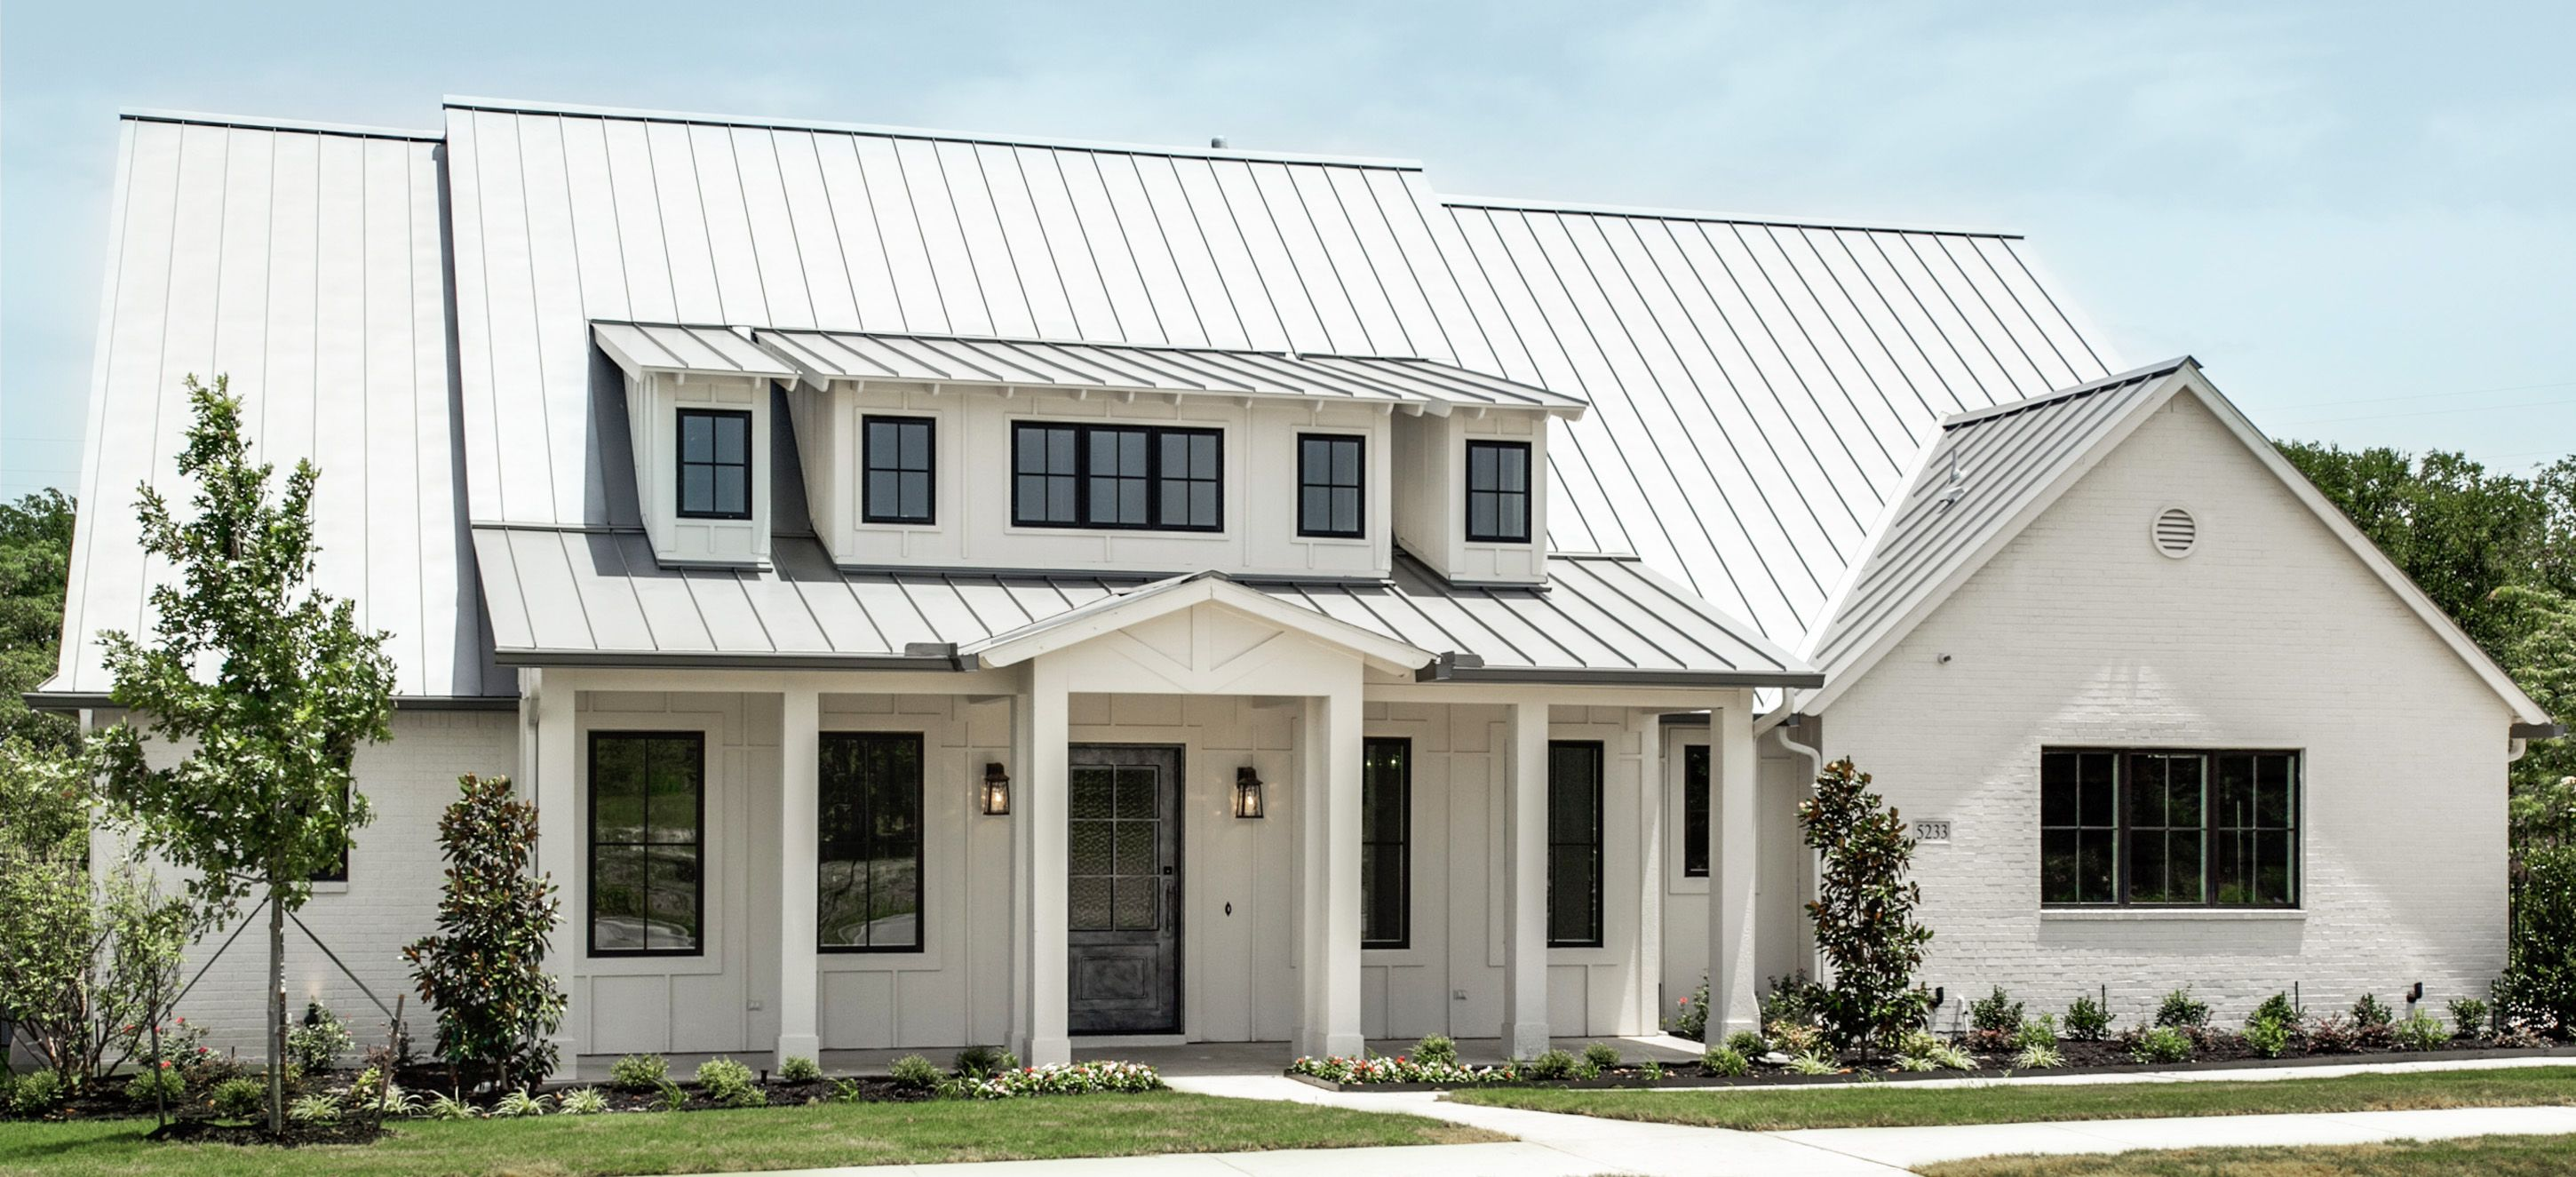 Modern farm house la cantera metal roof white painted for Modern painted houses pictures